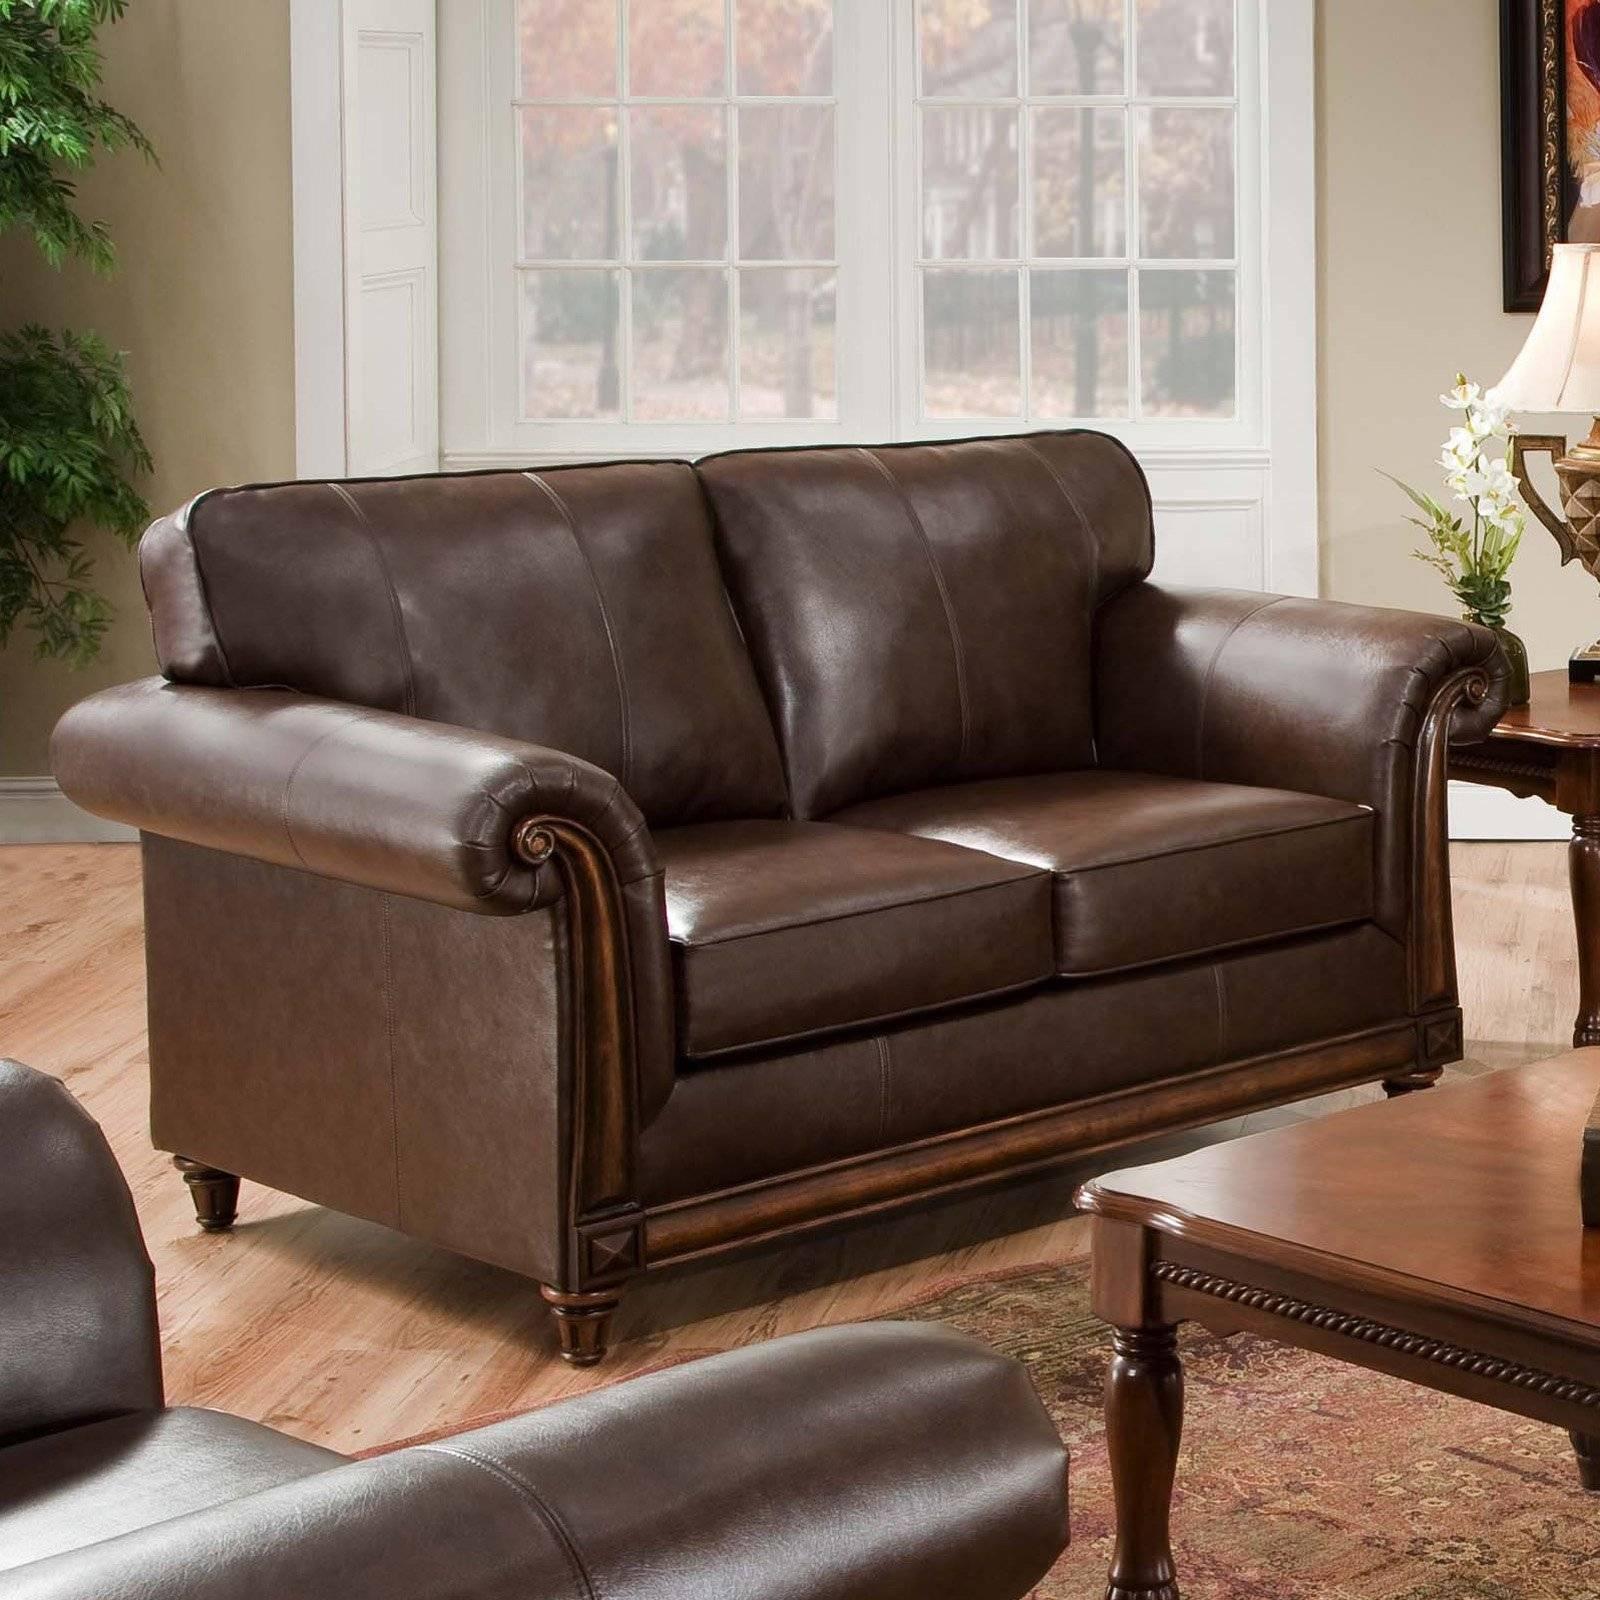 Simmons San Diego Coffee Leather Loveseat | Hayneedle in Simmons Leather Sofas (Image 10 of 15)